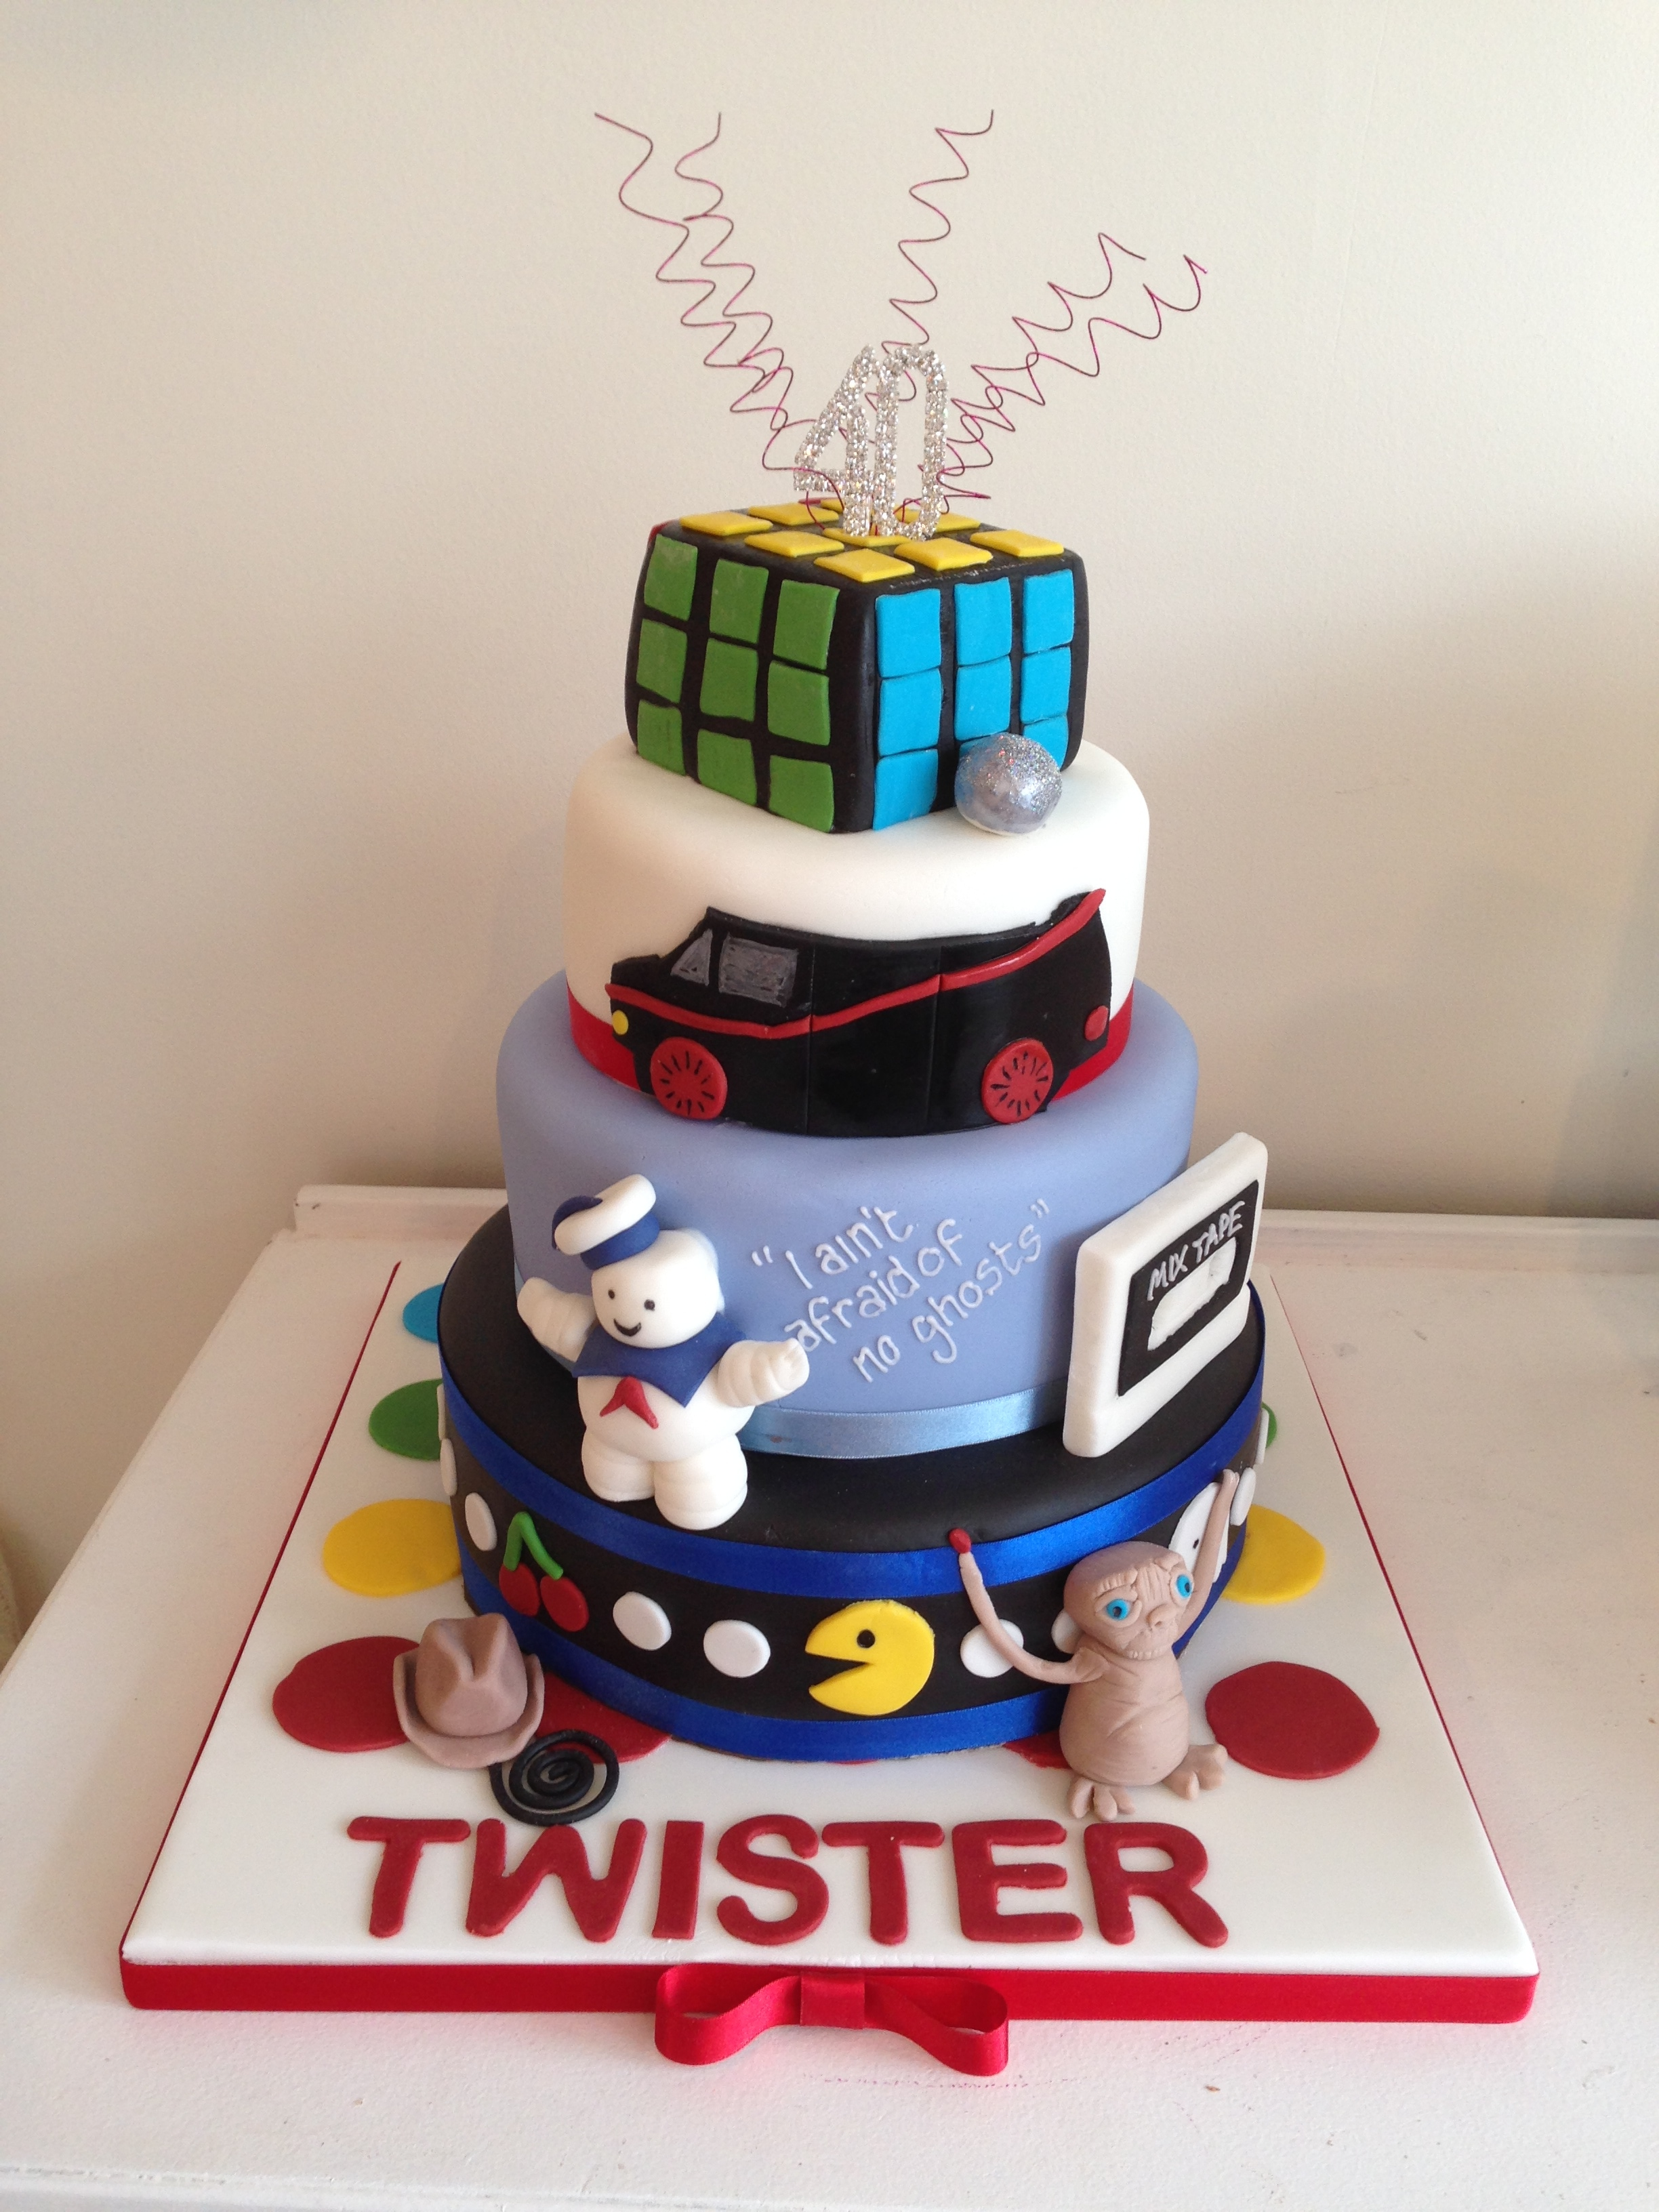 Male Birthday Cakes Bedfordshire Hertfordshire